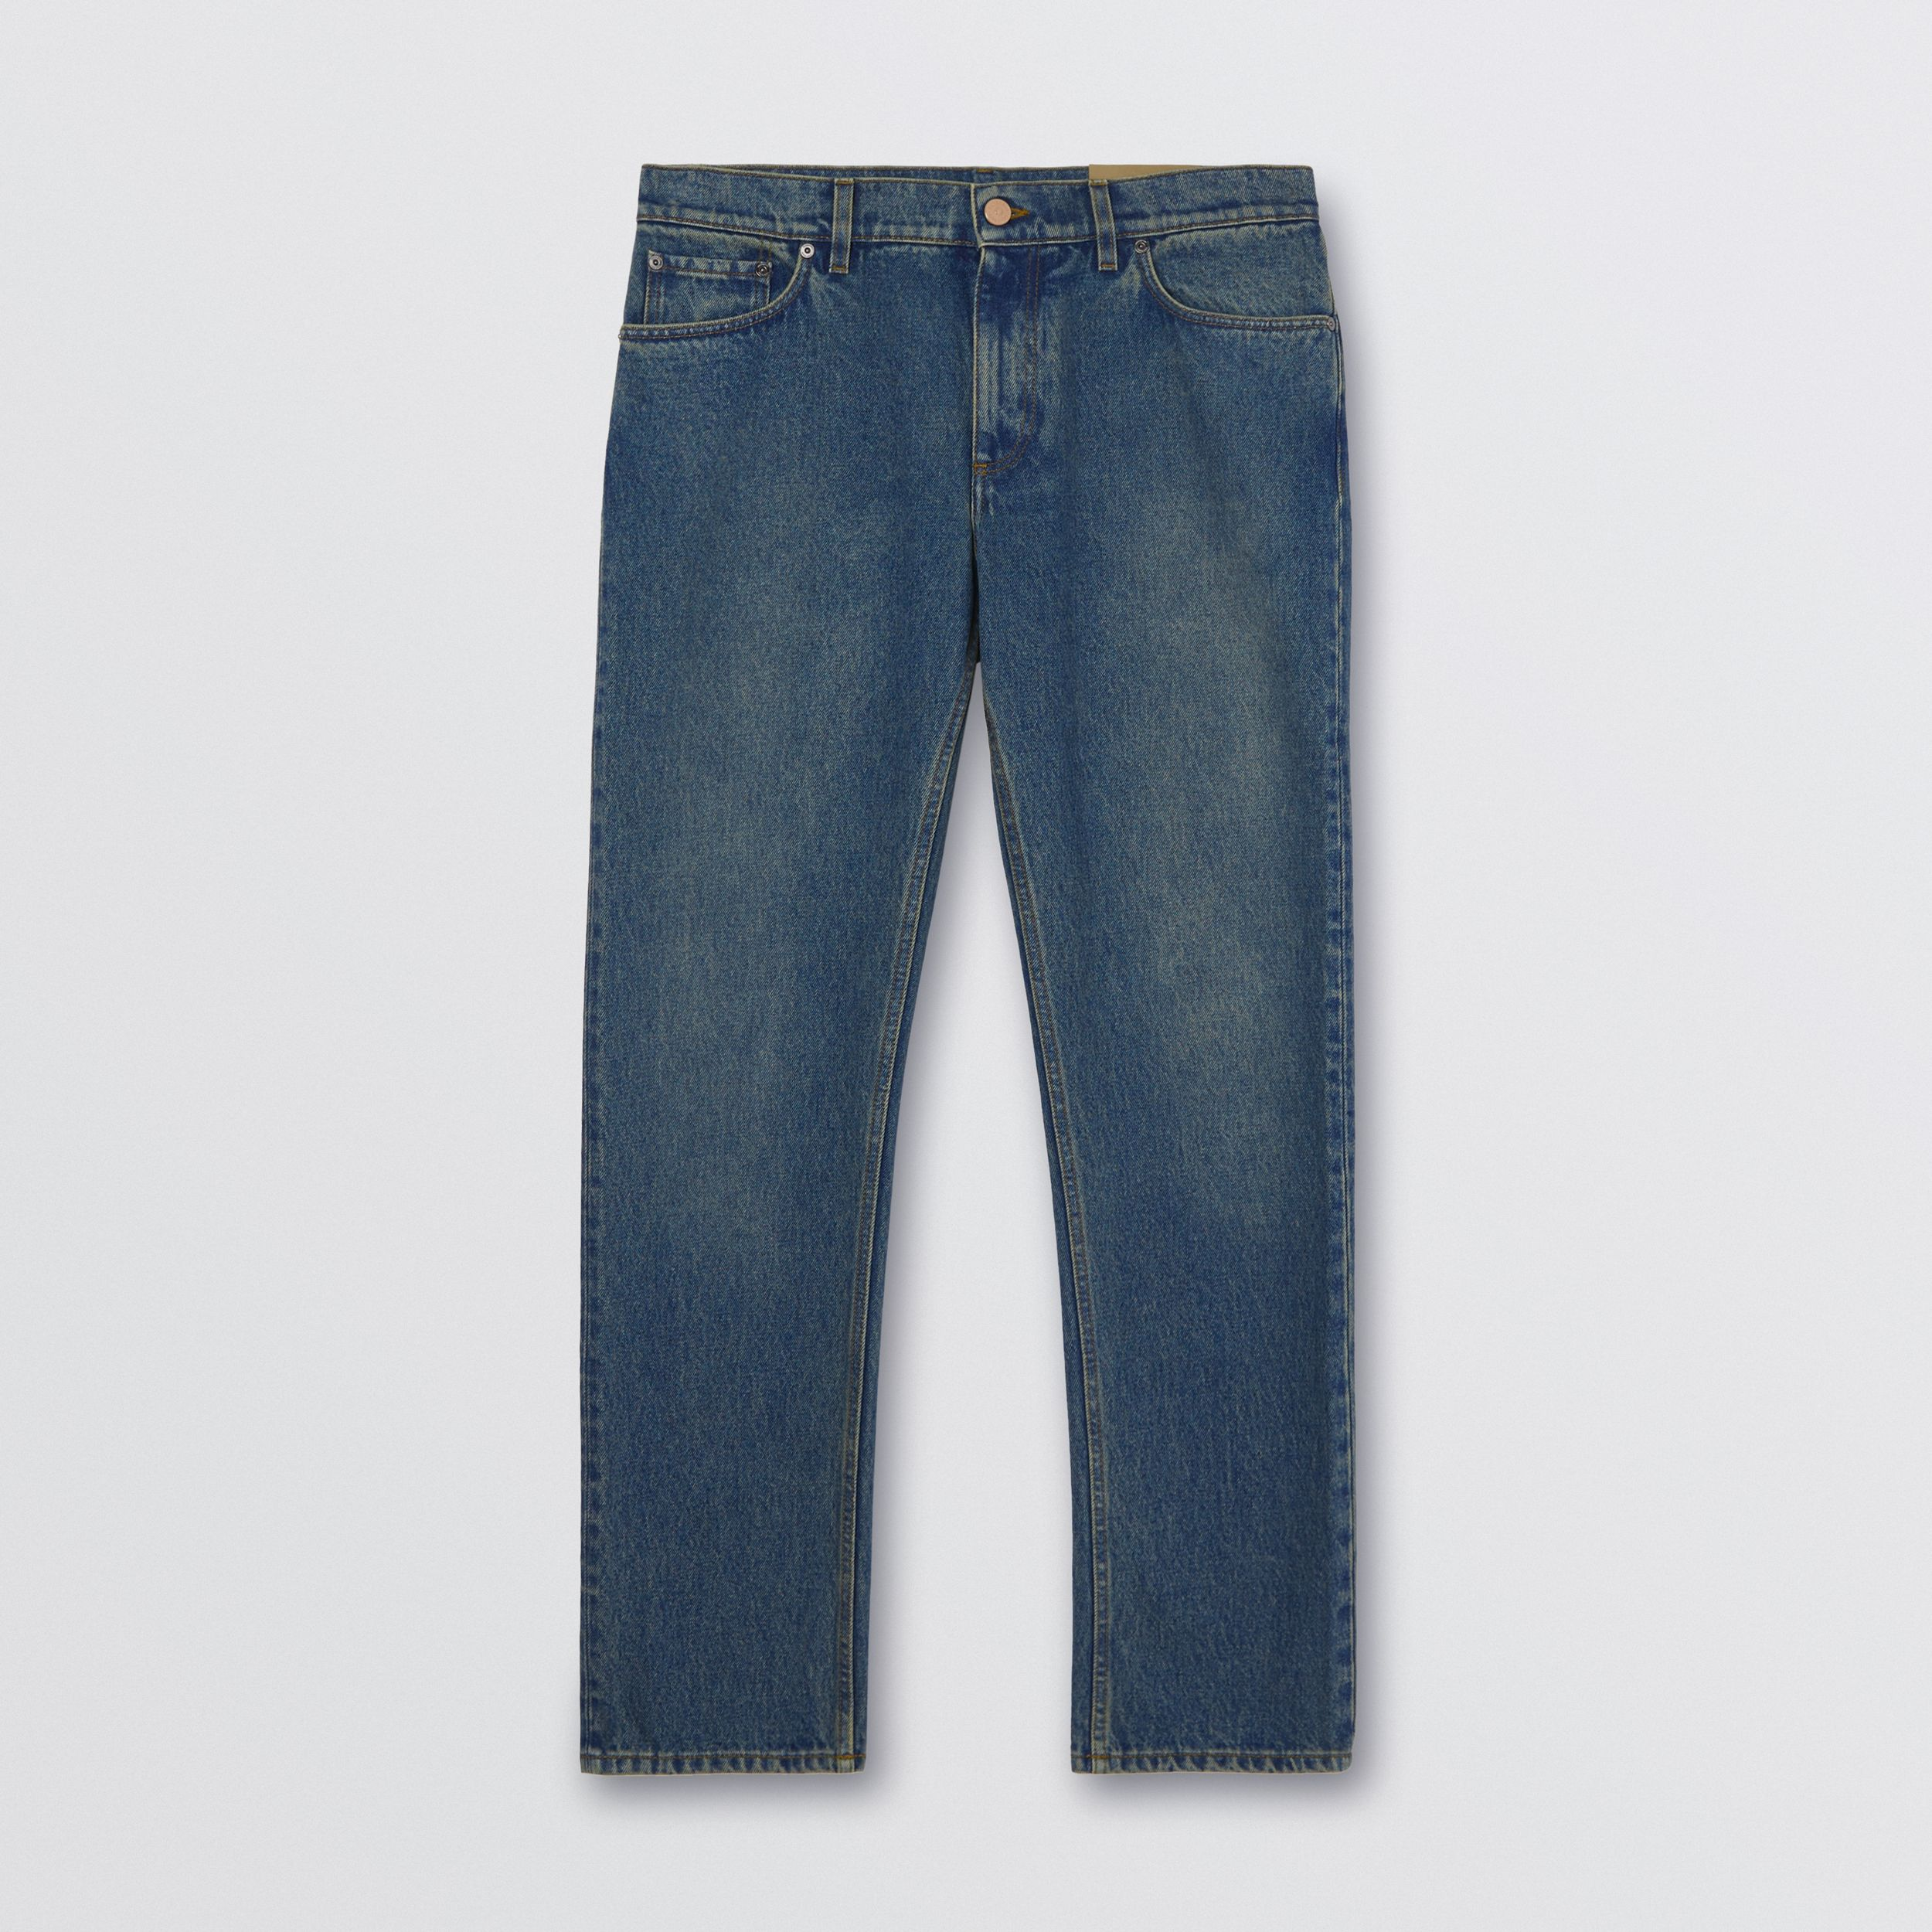 Straight Fit Washed Jeans in Indigo - Men | Burberry Canada - 4